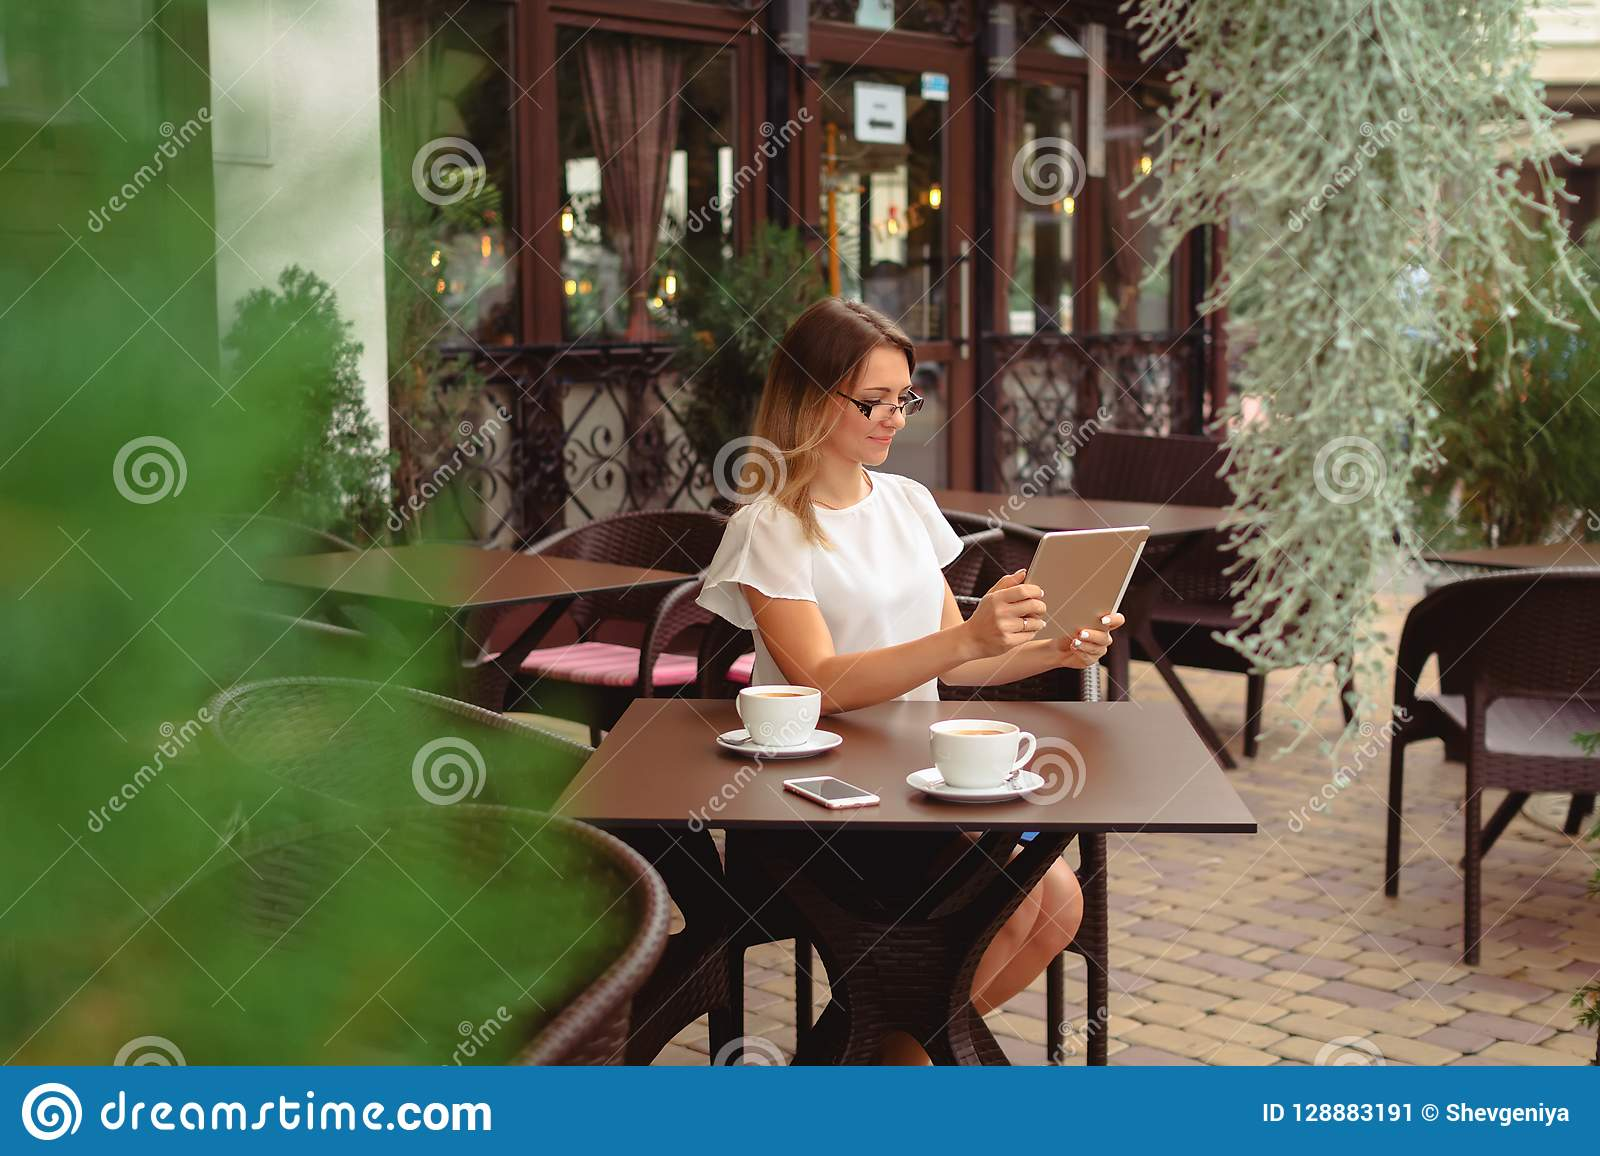 Woman using digital tablet and drinking coffee.